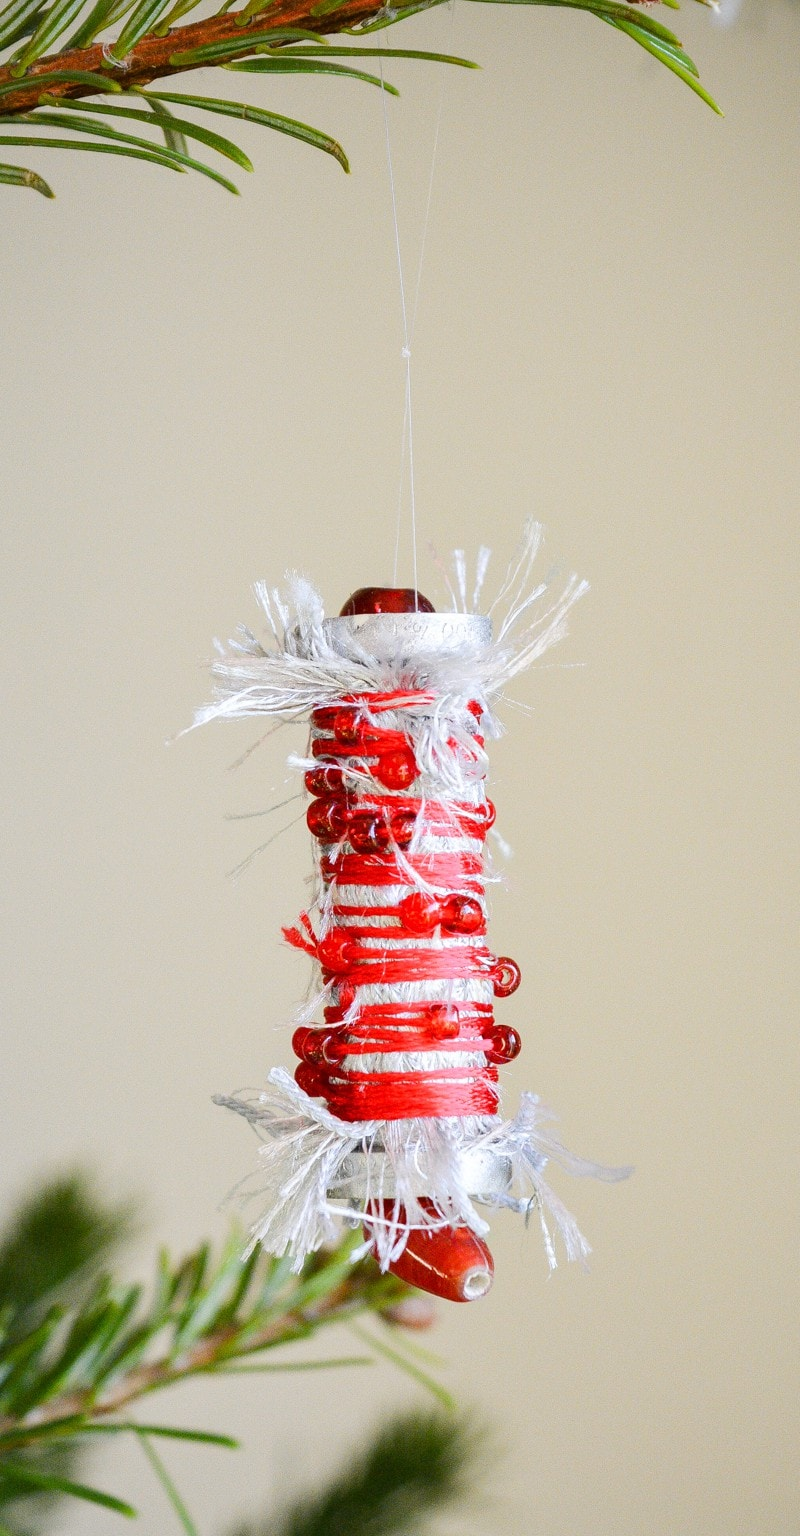 Recycle Plastic Cotton Reels - Upcycled Christmas Decoration 2